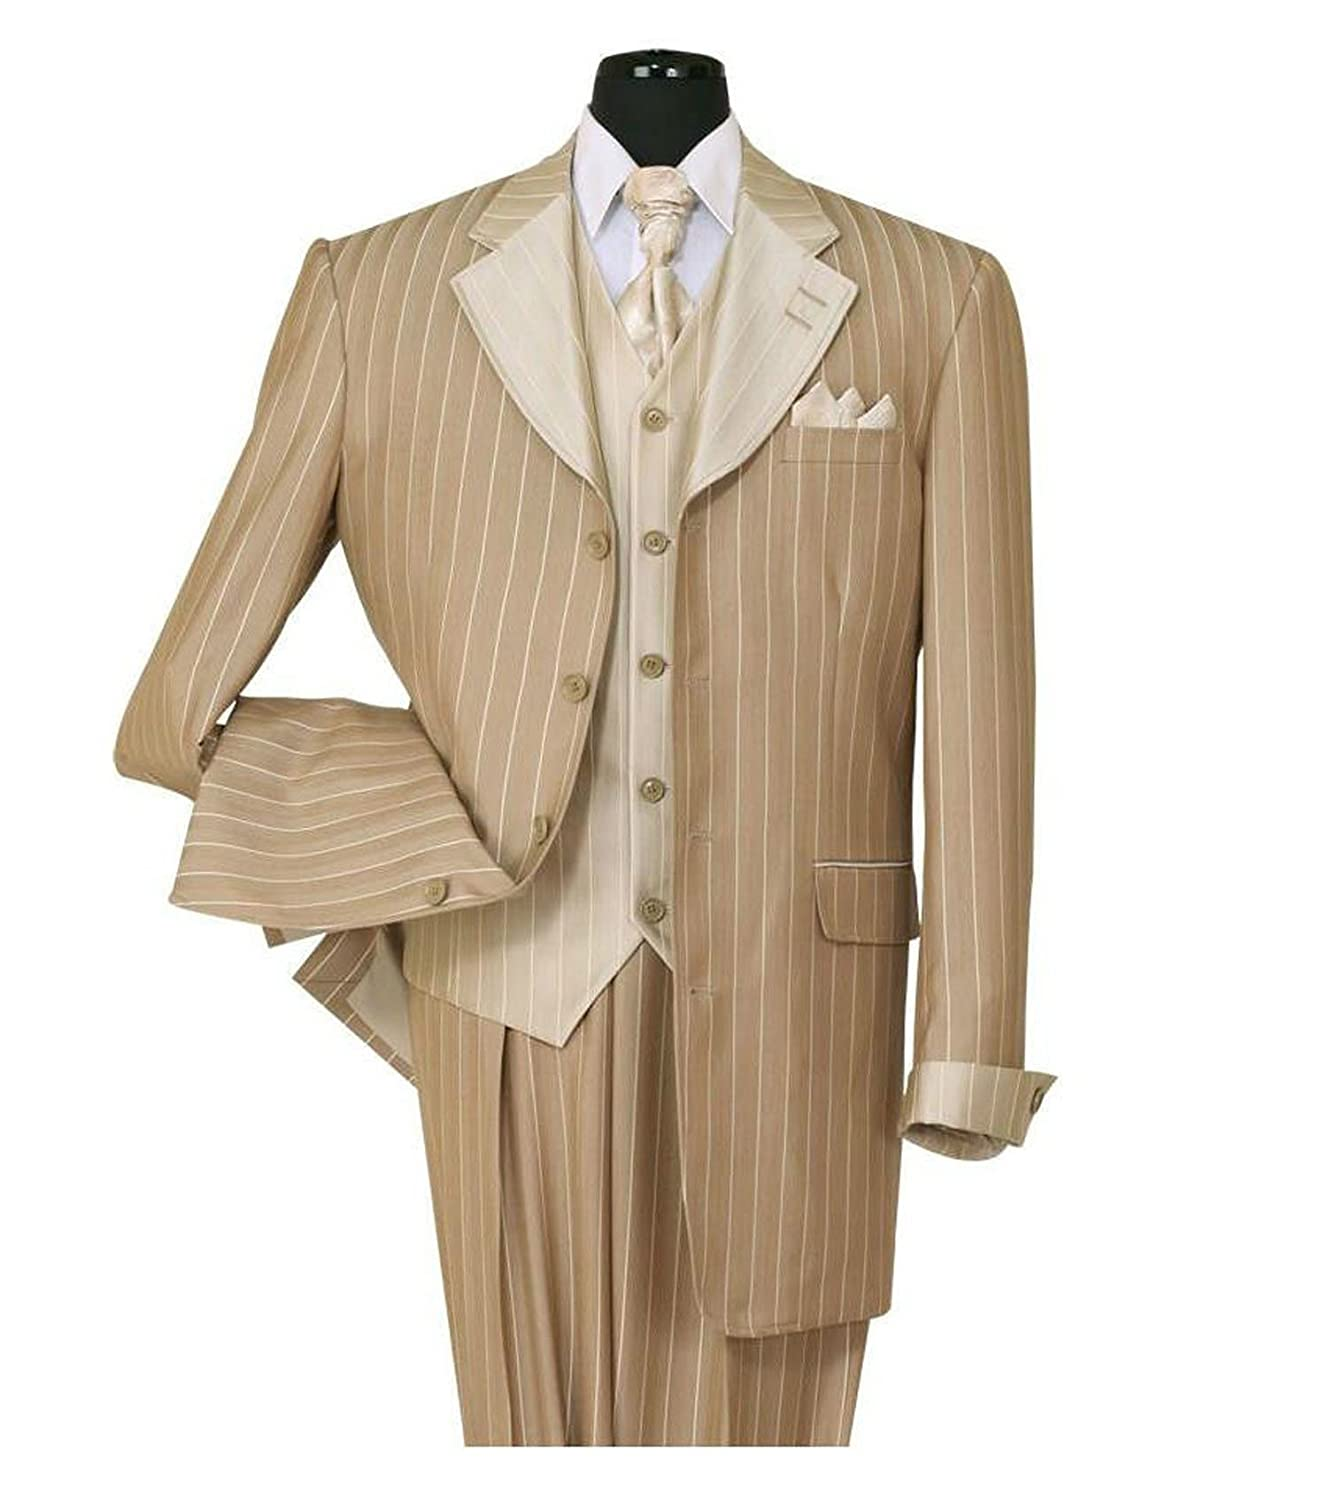 New 1940's Style Zoot Suits for Sale Milano Moda Pinestripe Fashion Suit with Contrast Collar Cuffs & Vest  4 Colors  AT vintagedancer.com